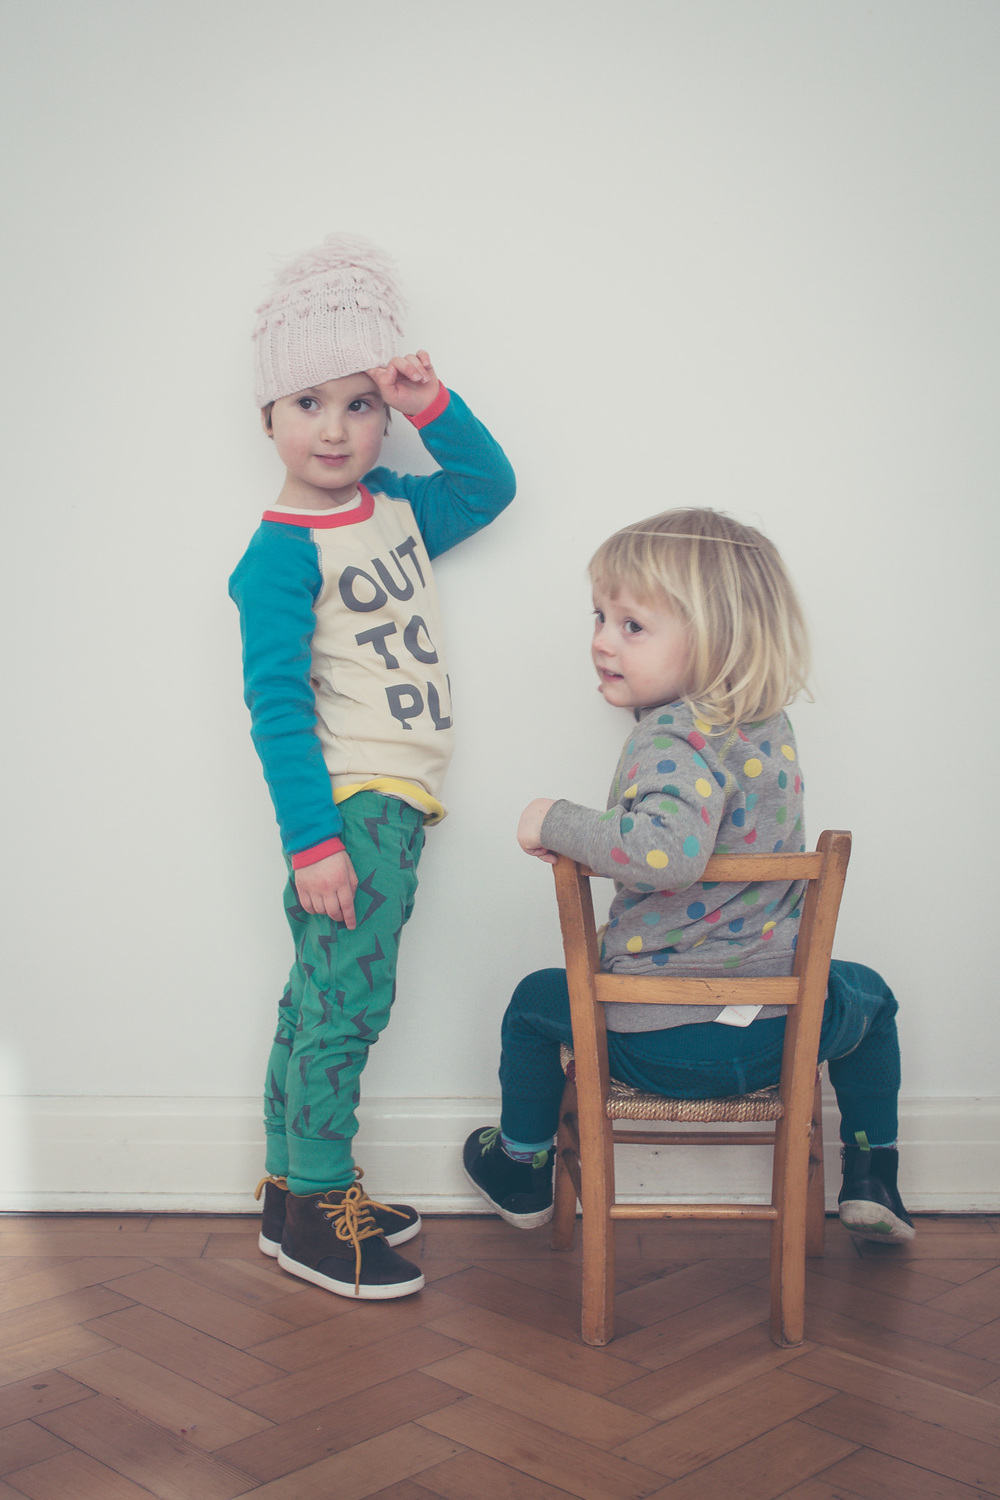 Ellie and Frankie in Boys and Girls + Clarks shoot by Wild Fox Portraits for Seeds and Stitches blog.